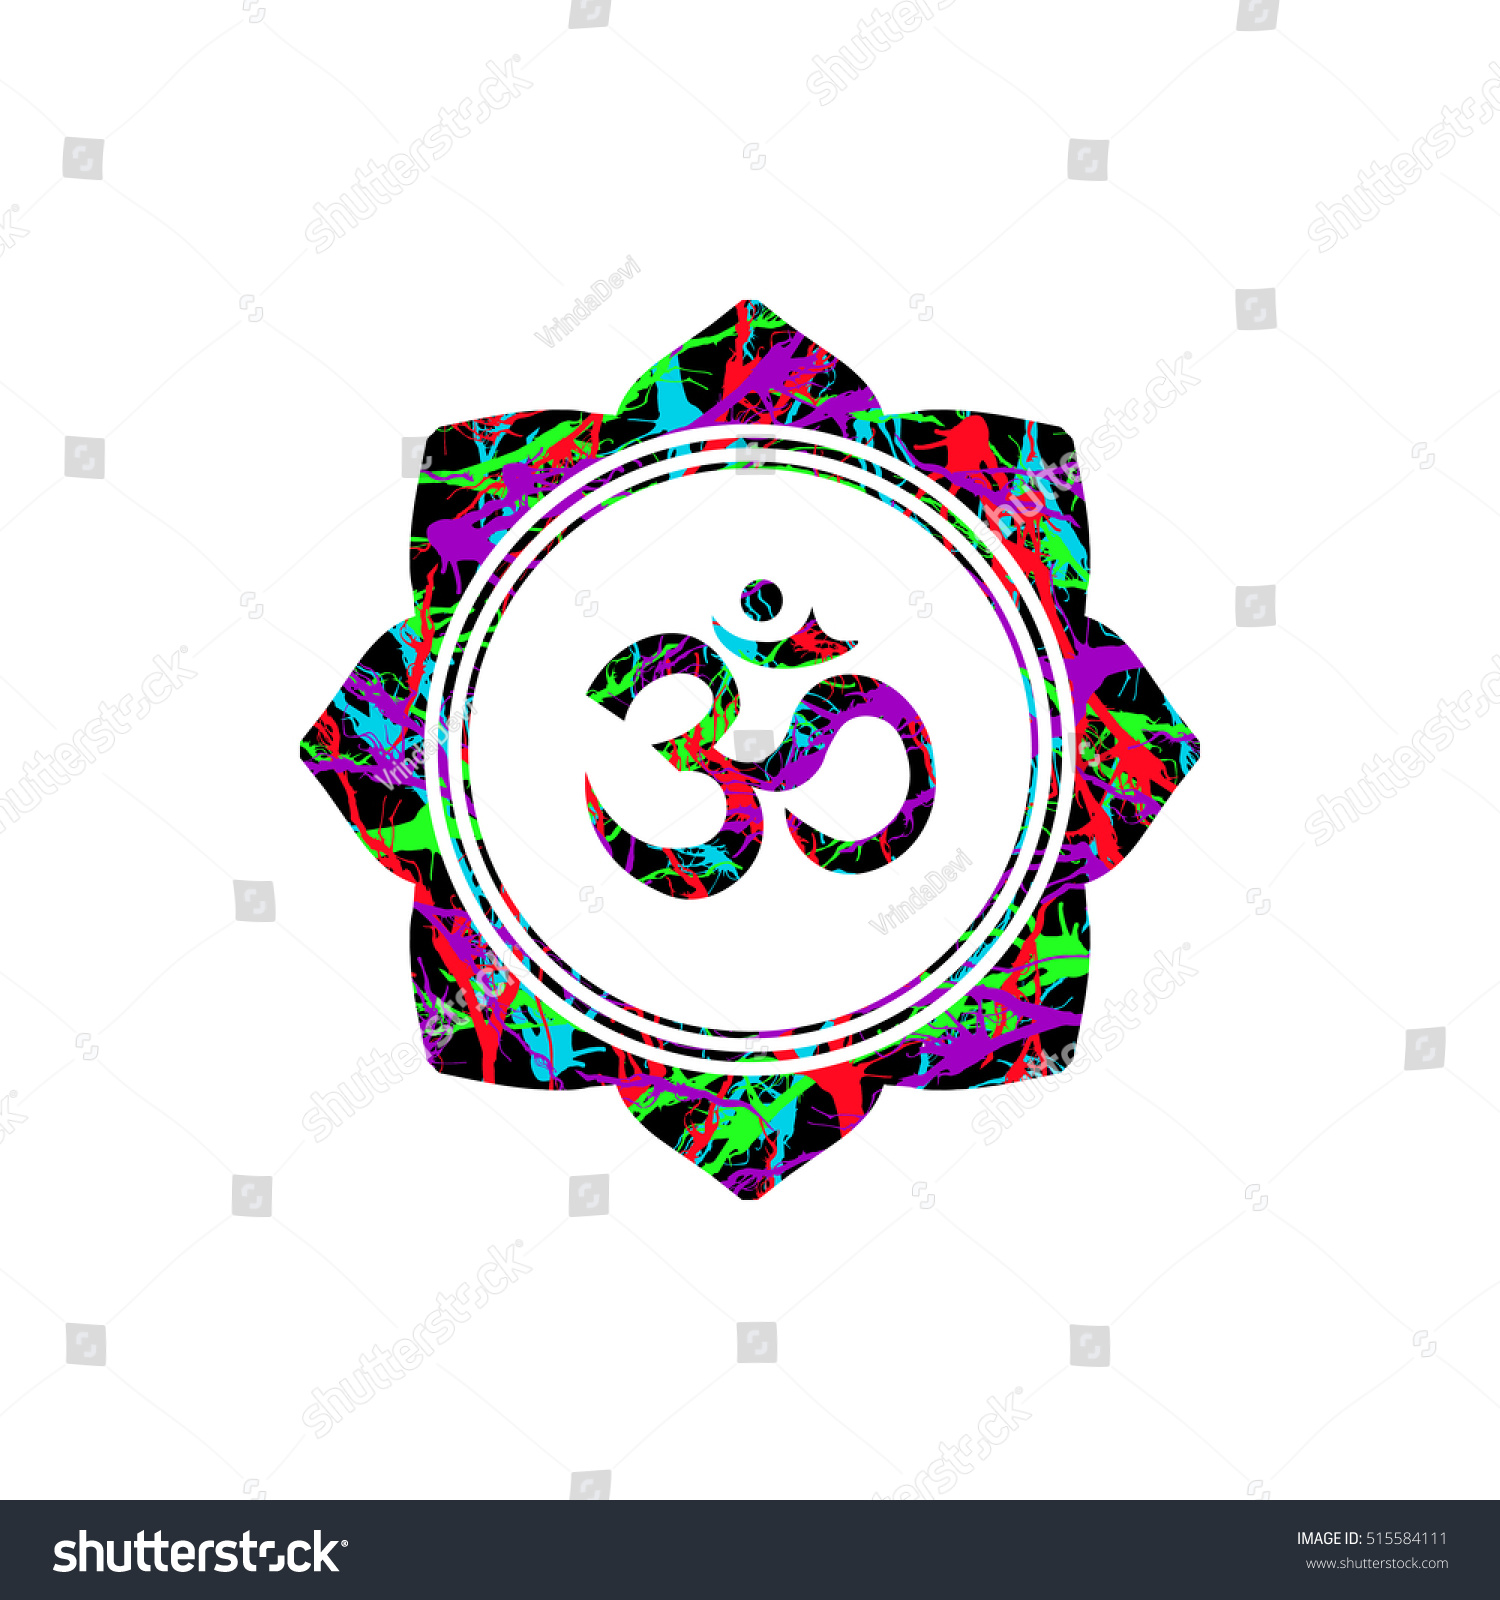 Om sign lotus flower vector buddhist stock vector royalty free om sign in lotus flower vector buddhist religious sacred symbol om and lotus illustration izmirmasajfo